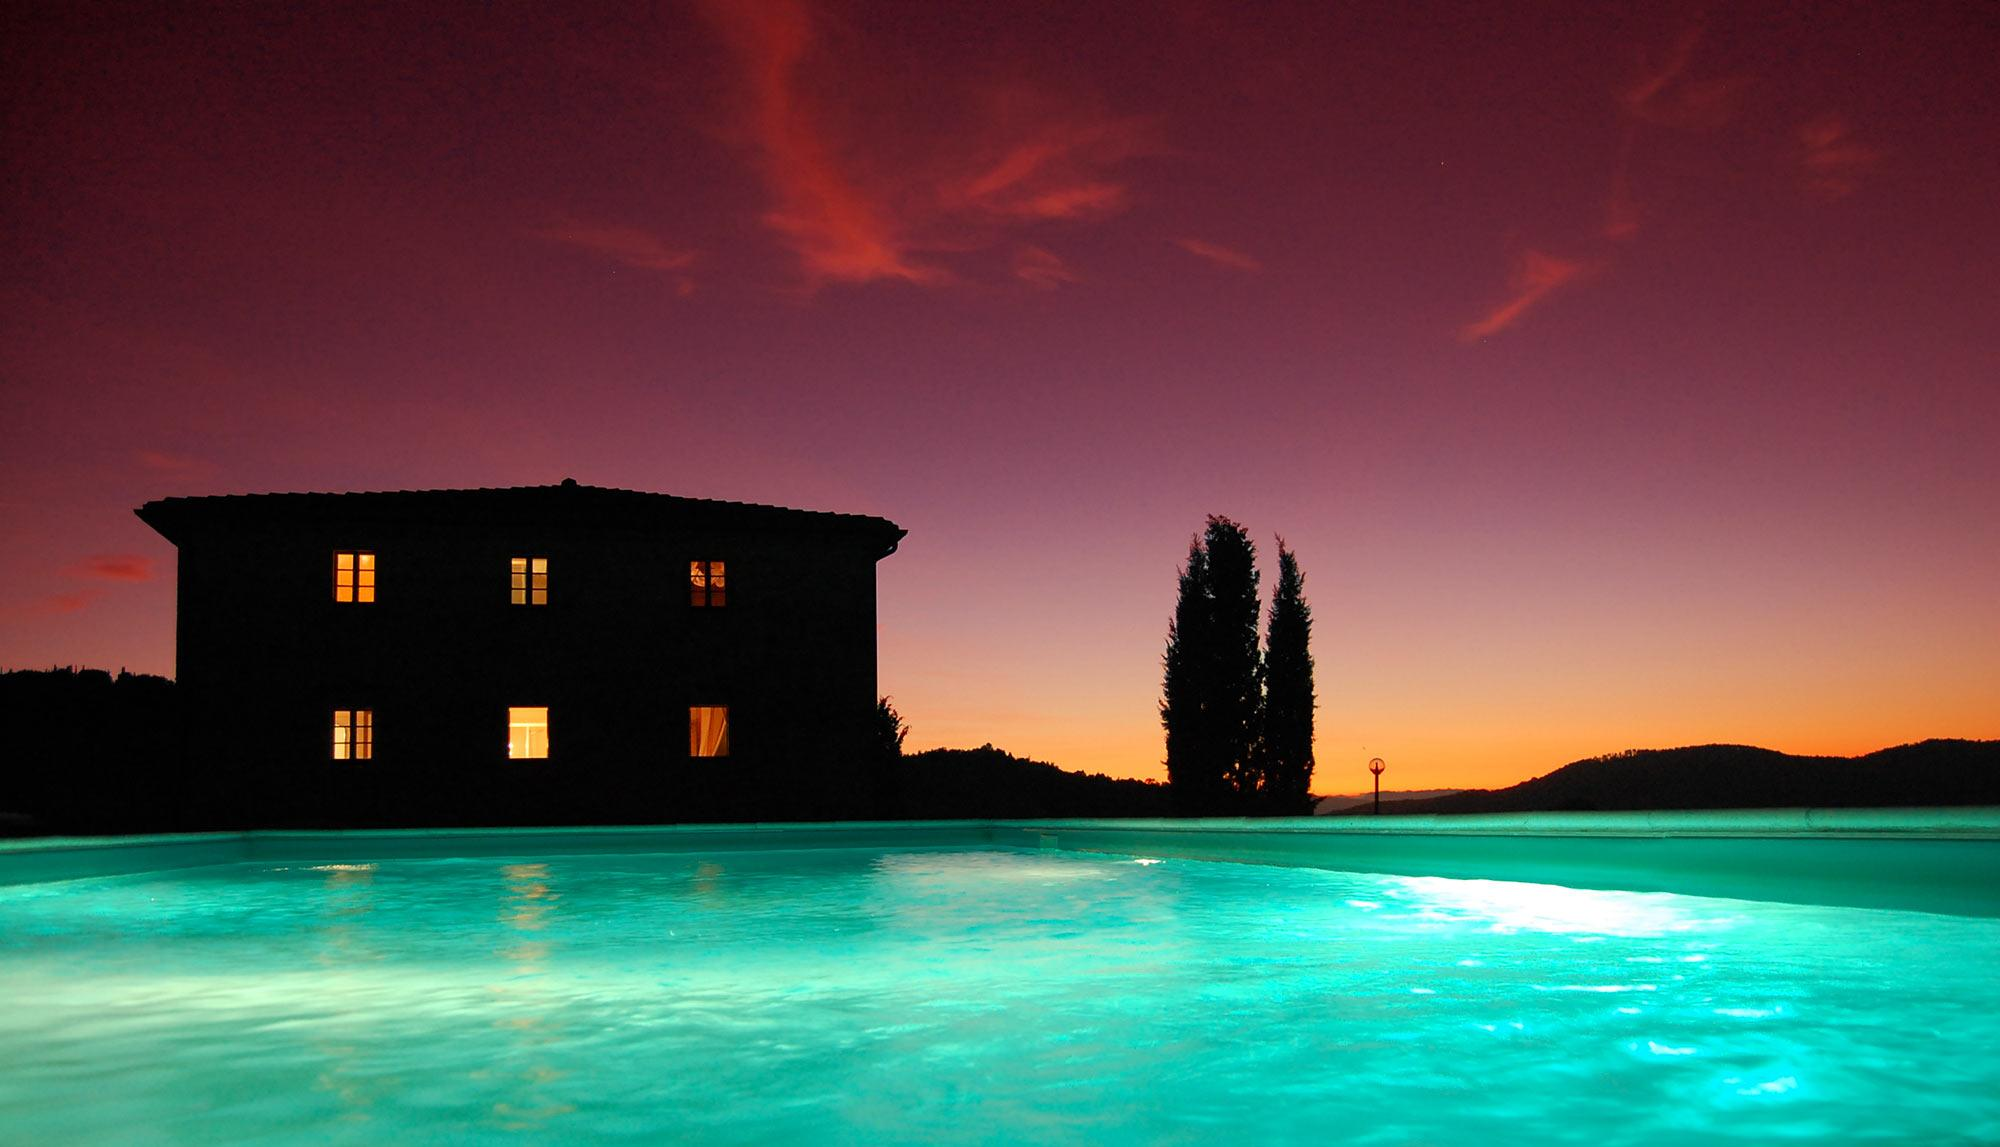 illuminated pool of the rental villa